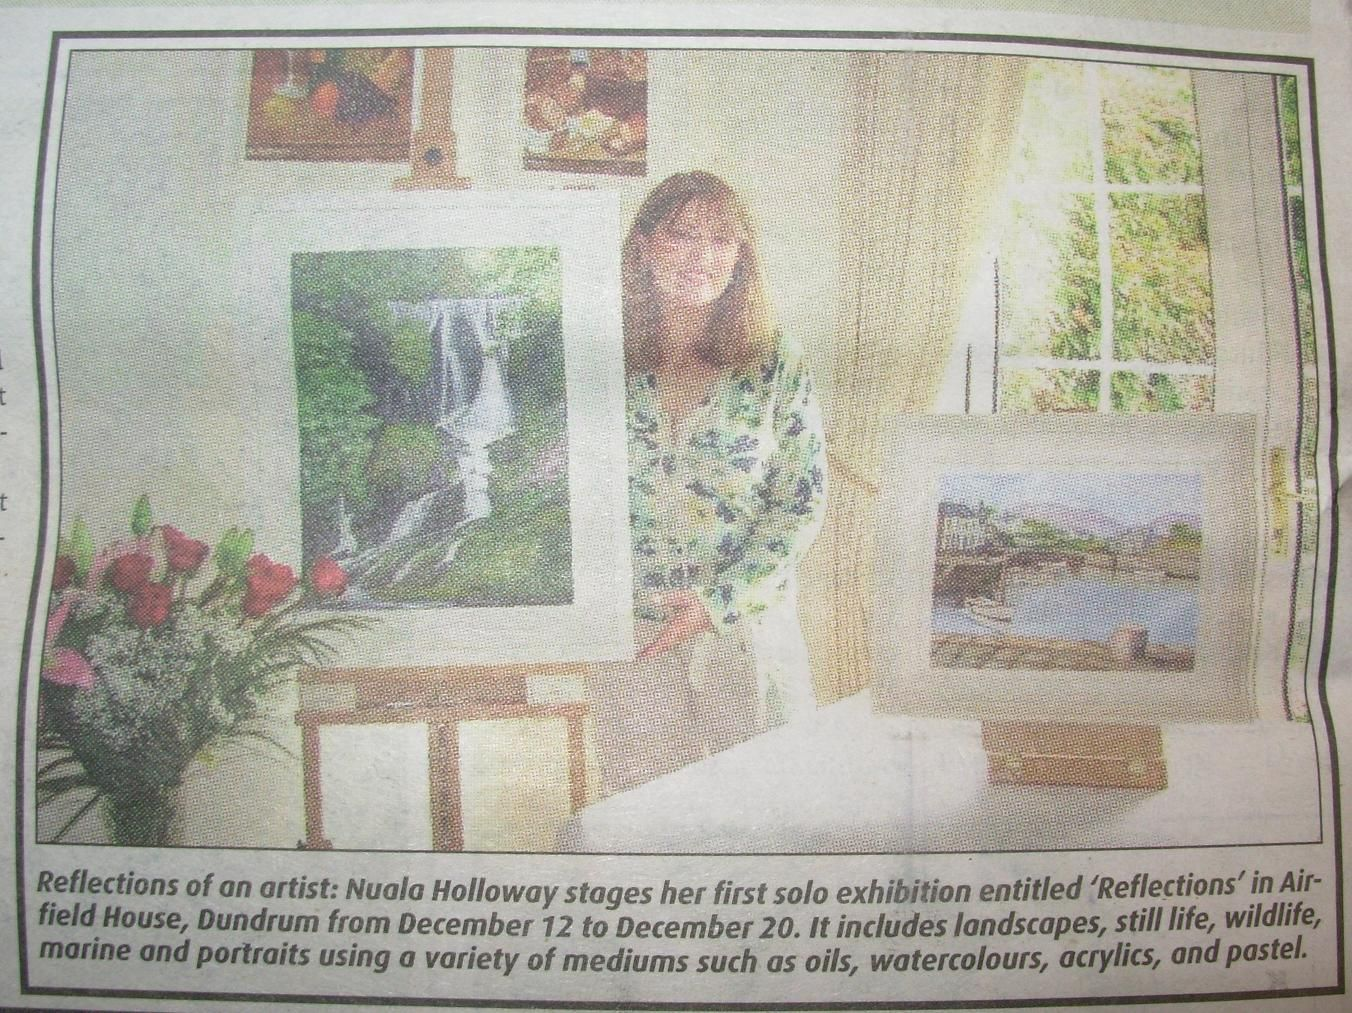 "FROM THE ARCHIVES: Regional coverage in the Southside People of Nuala's ""Reflections"" exhibition at Airfield House, Dundrum in December 2007. The exhibition was launched by writer and senator Eoghan Harris. www.nualaholloway.com #IrishArtist #NualaHolloway #IrishArt #Artist"